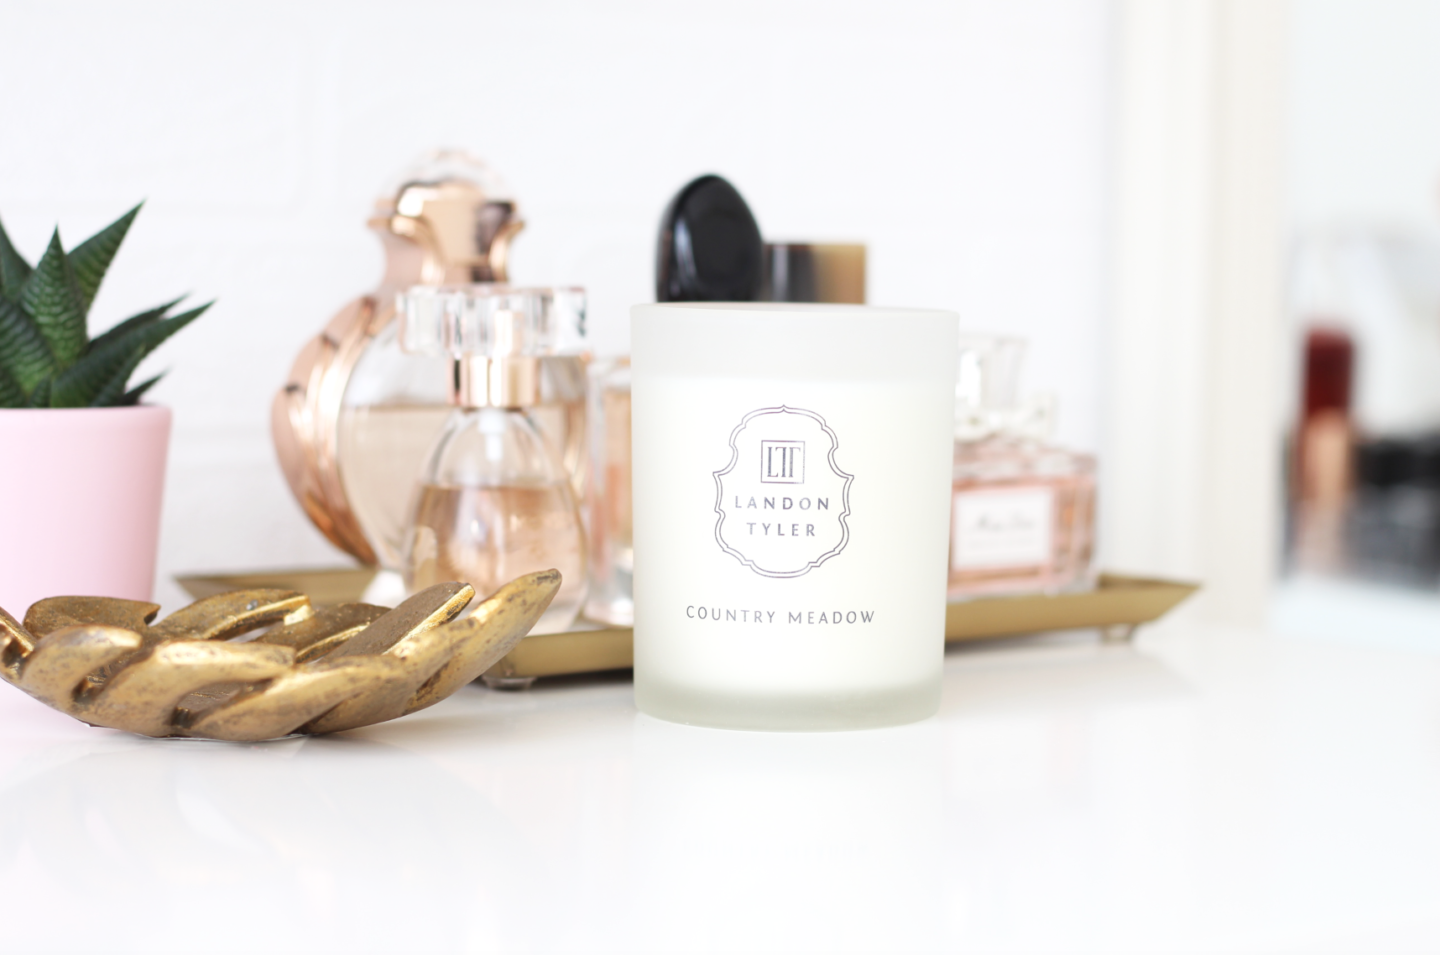 A LUXURIOUS MINIMALISTIC HOME FRAGRANCE